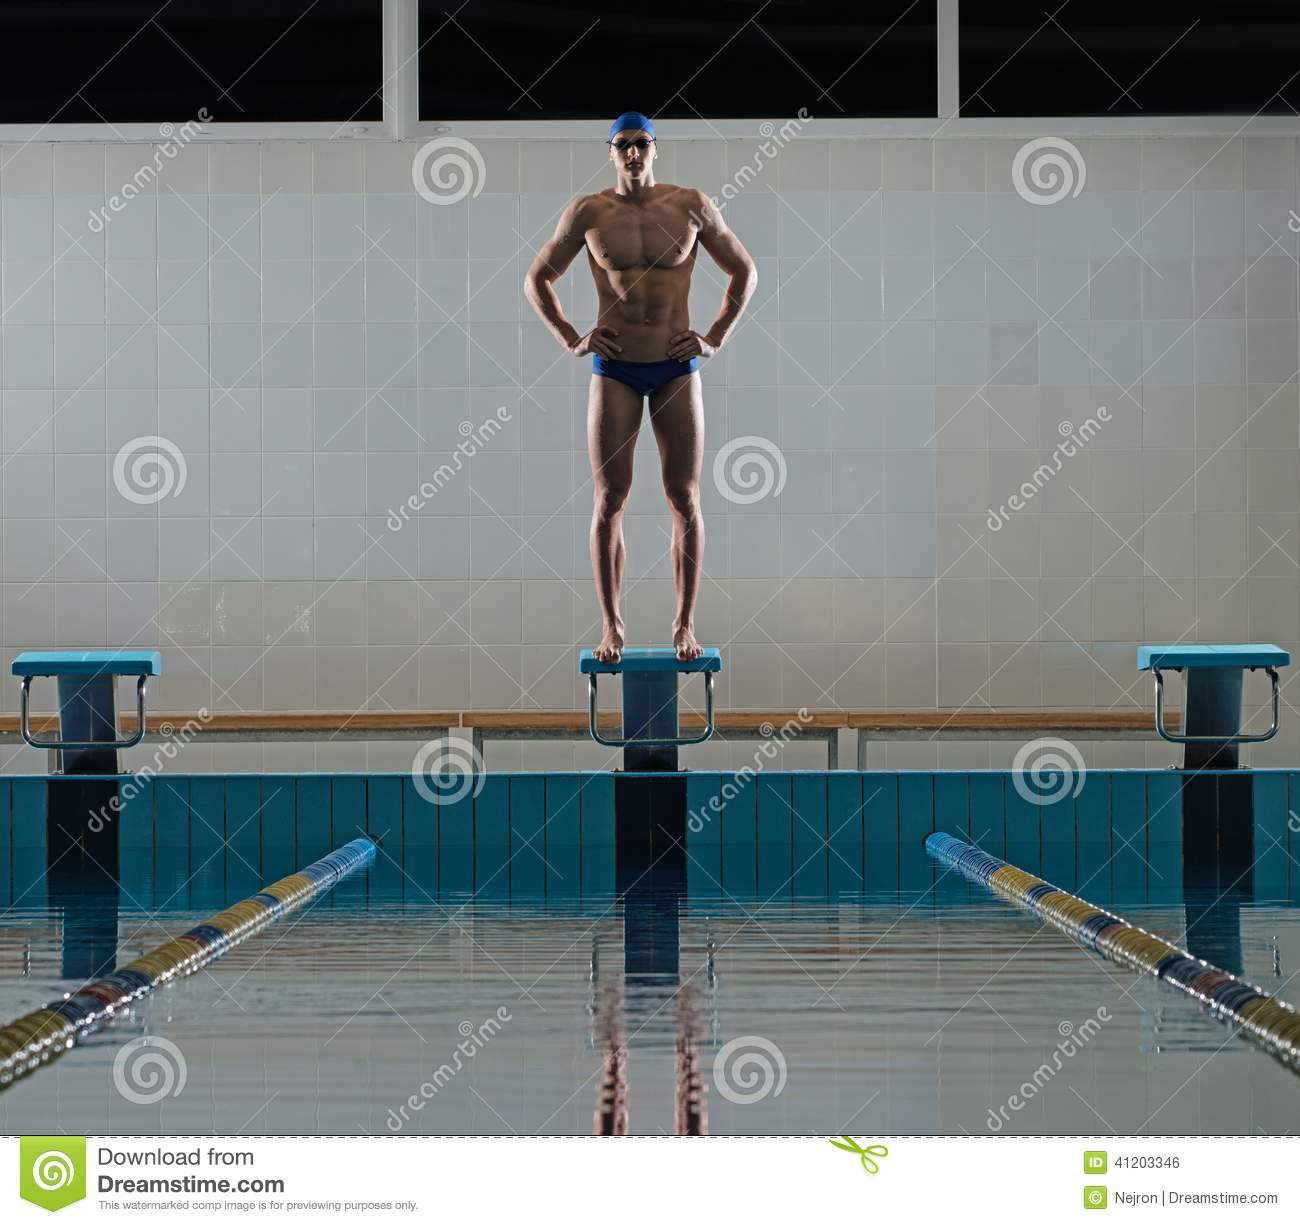 Olympic Swimming Pool In Person: Swimmer Standing On Starting Block Royalty-Free Stock